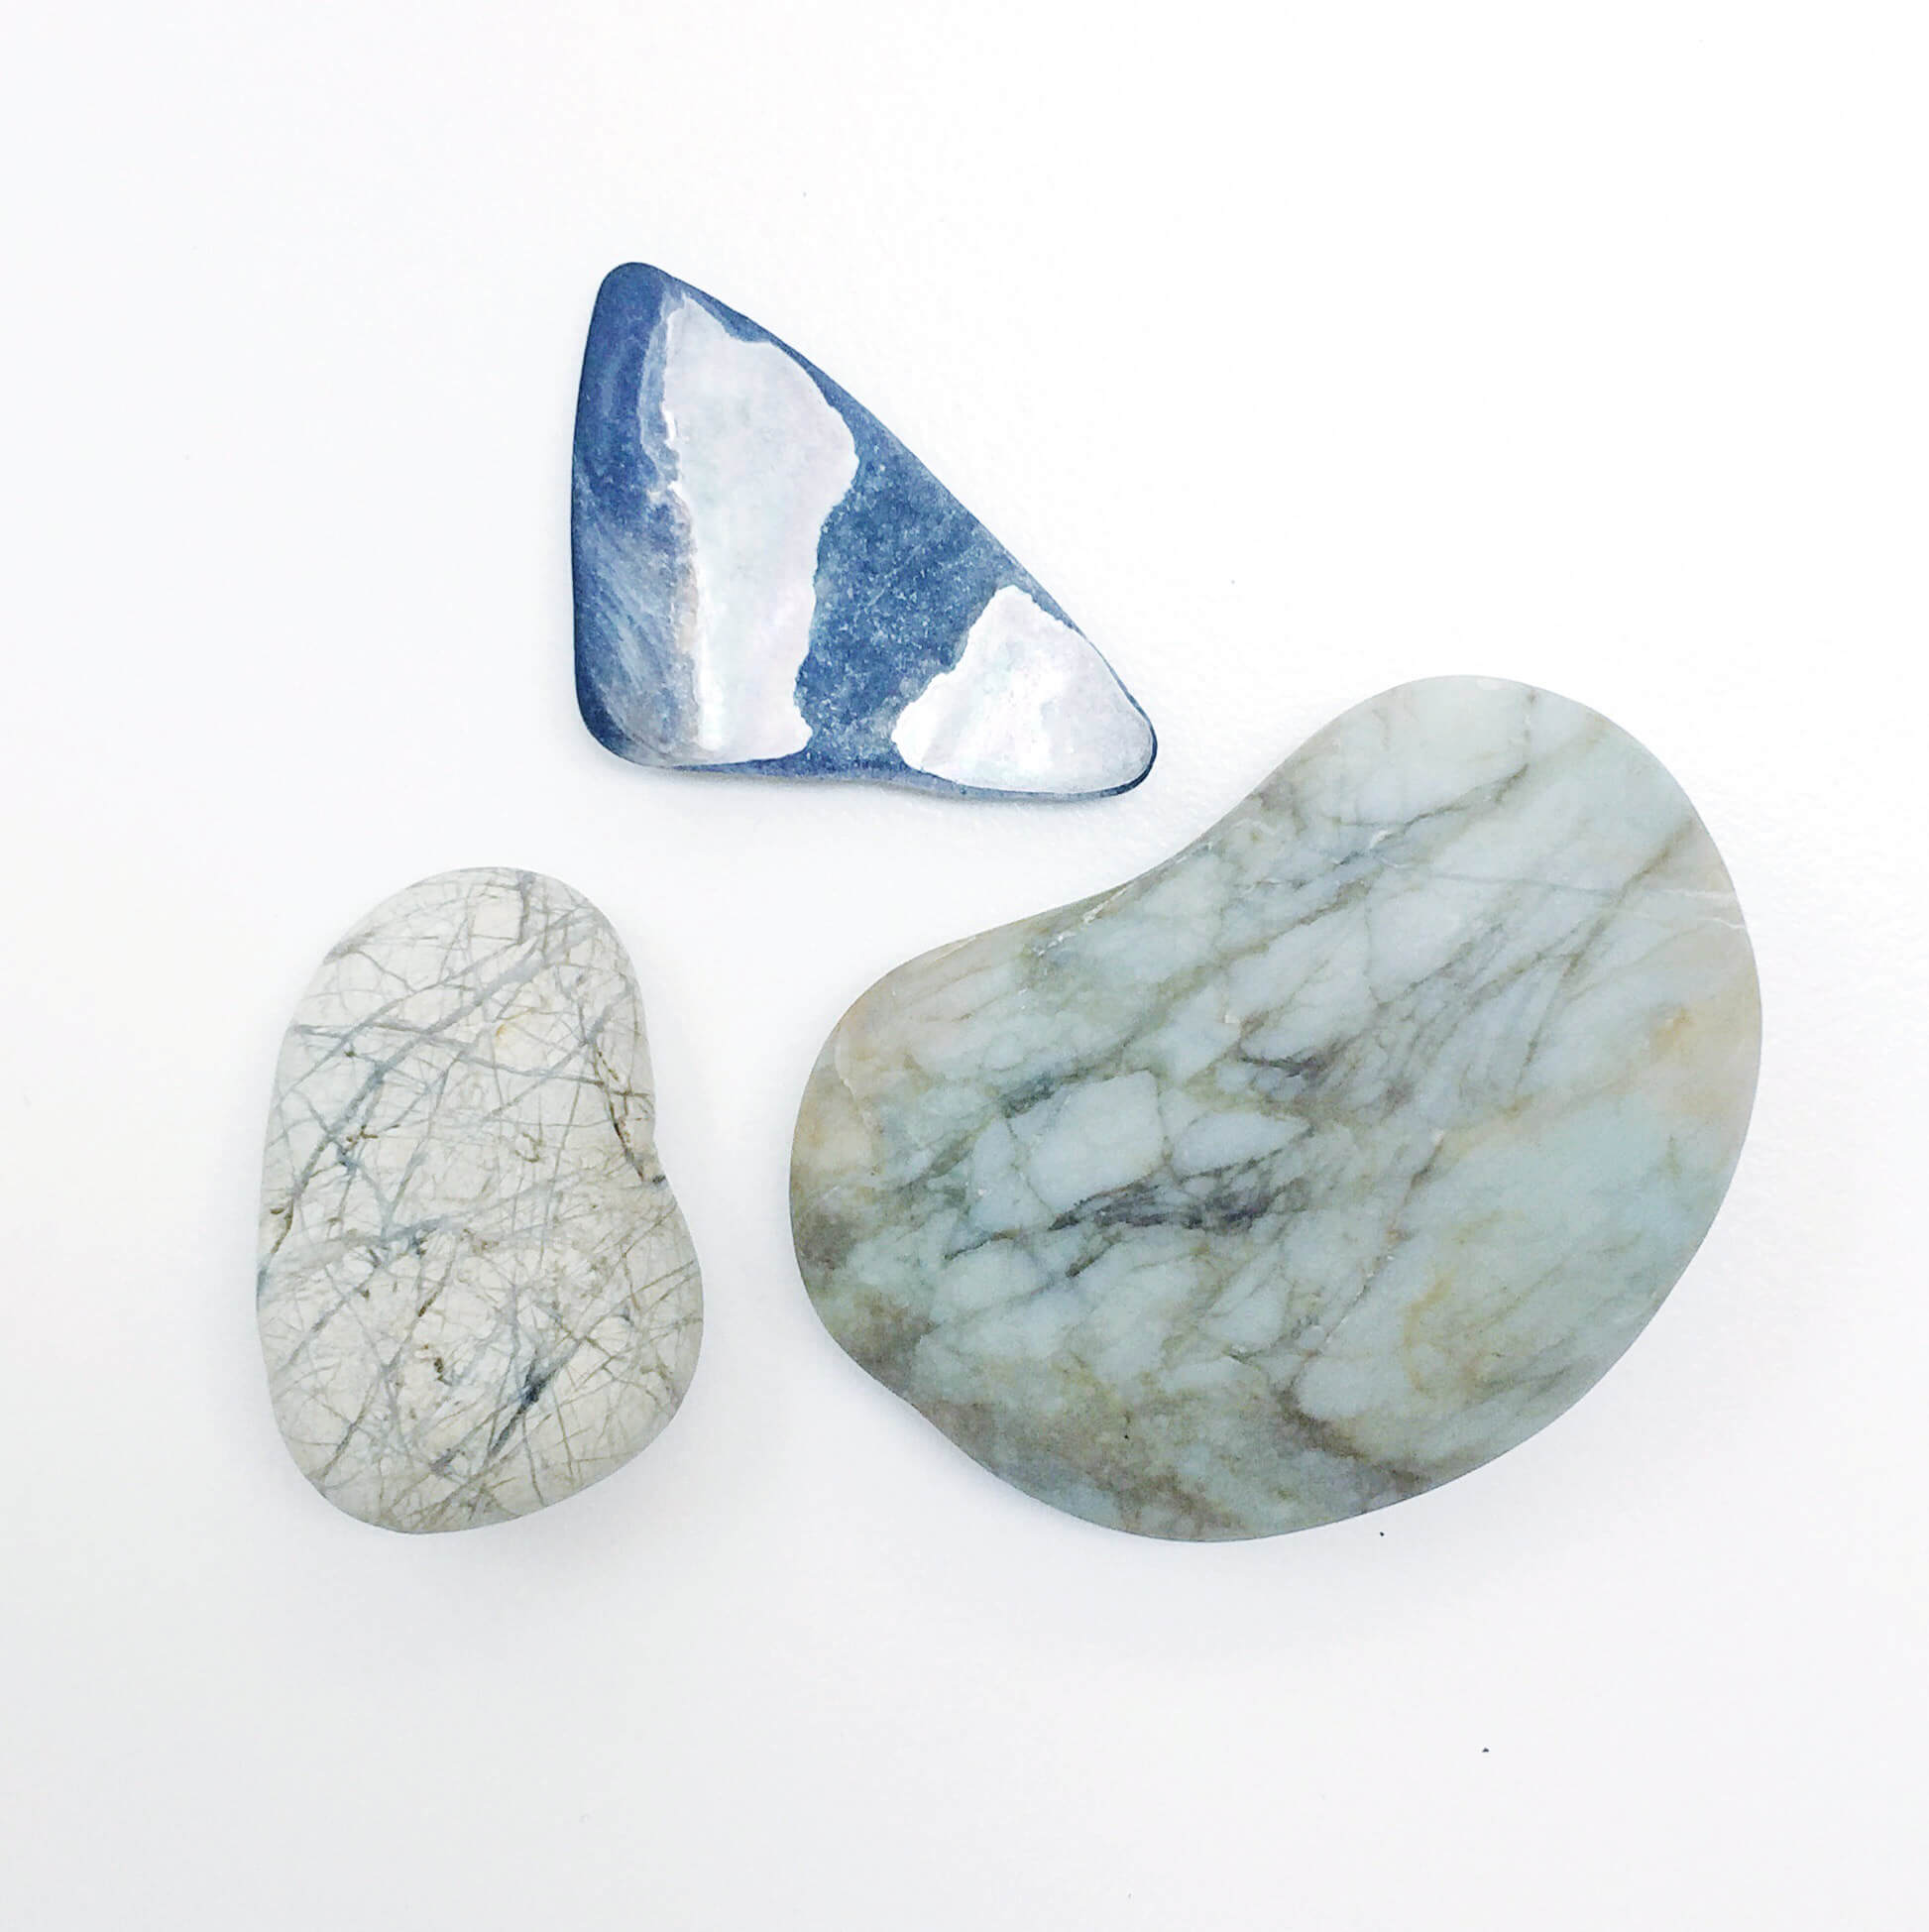 Photo of rocks used for inspiration by The Qurious Effect | Squarespace website designer